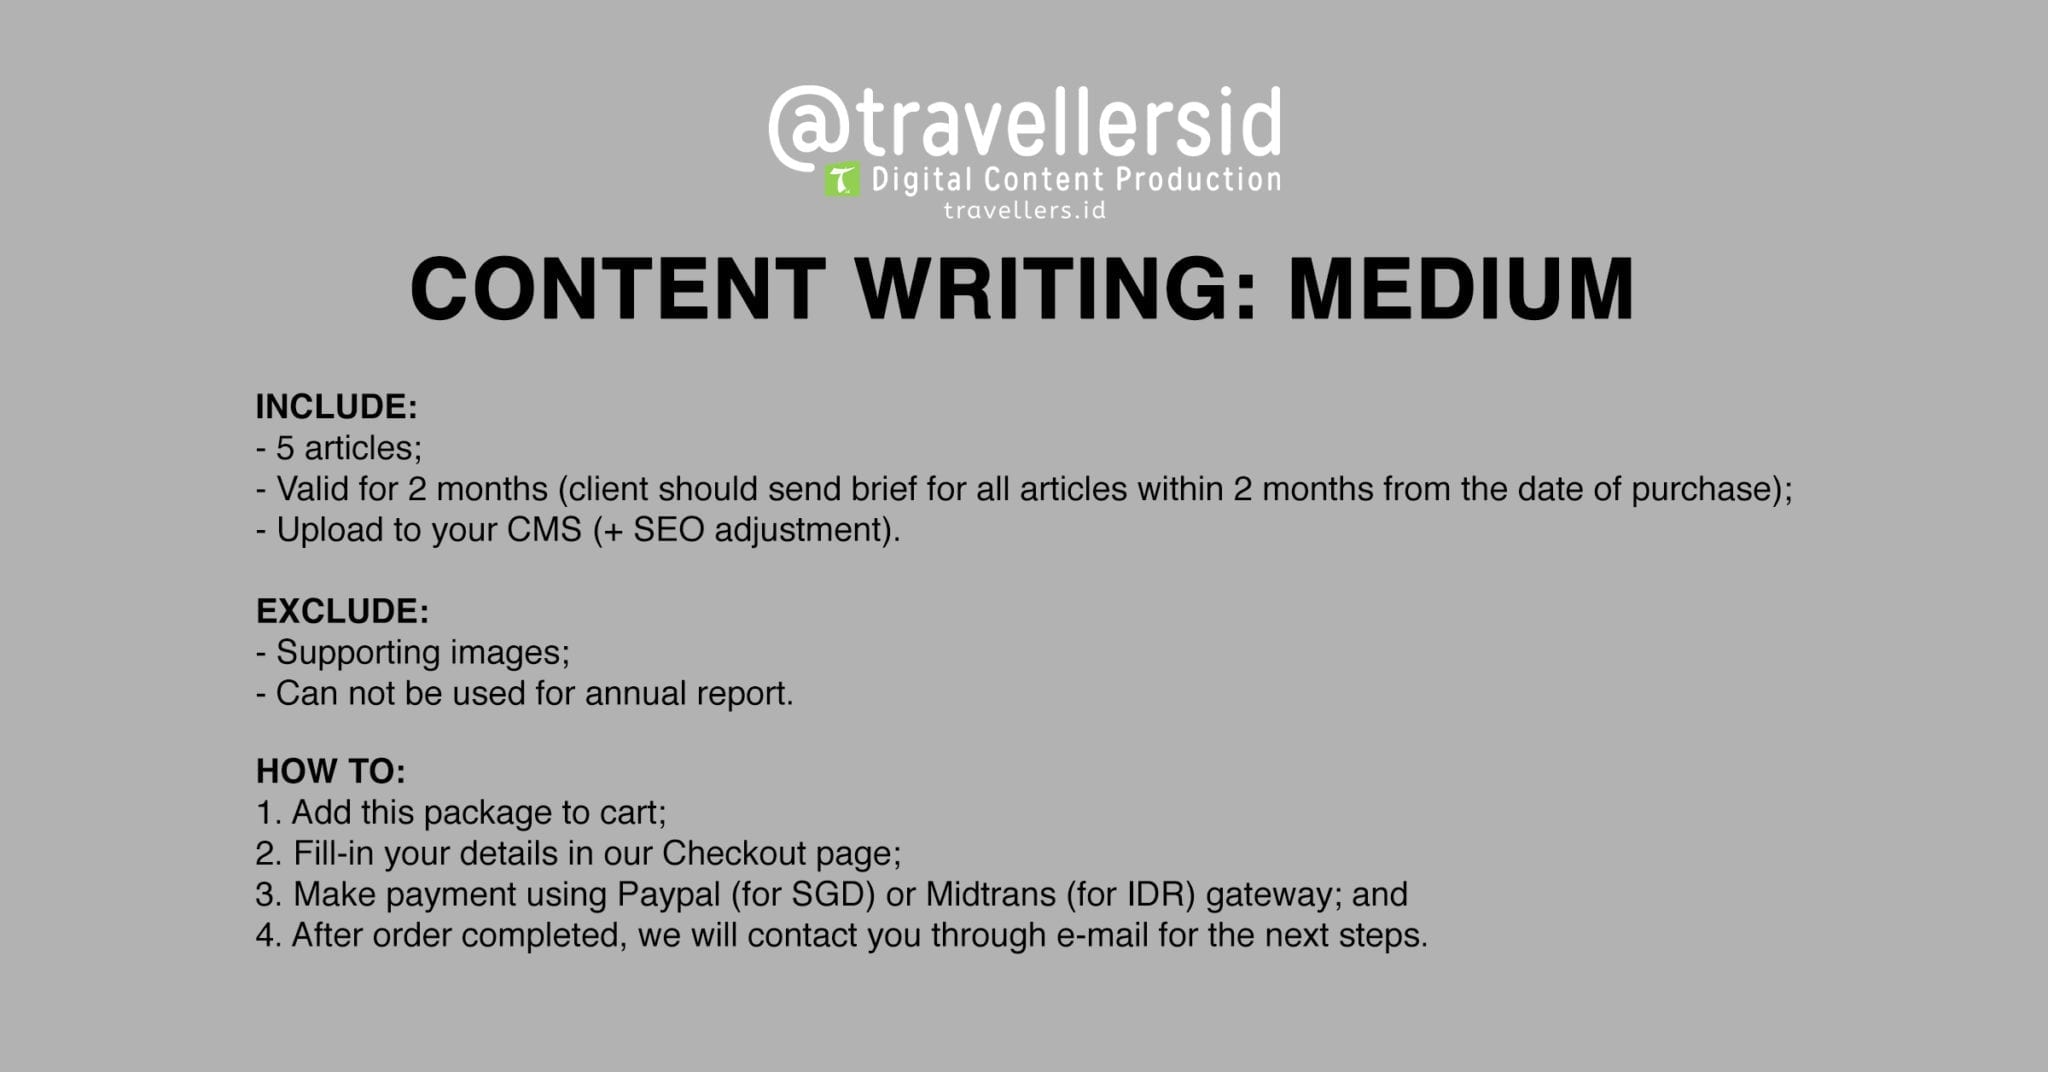 @TravellersID Content Writing Services - Medium